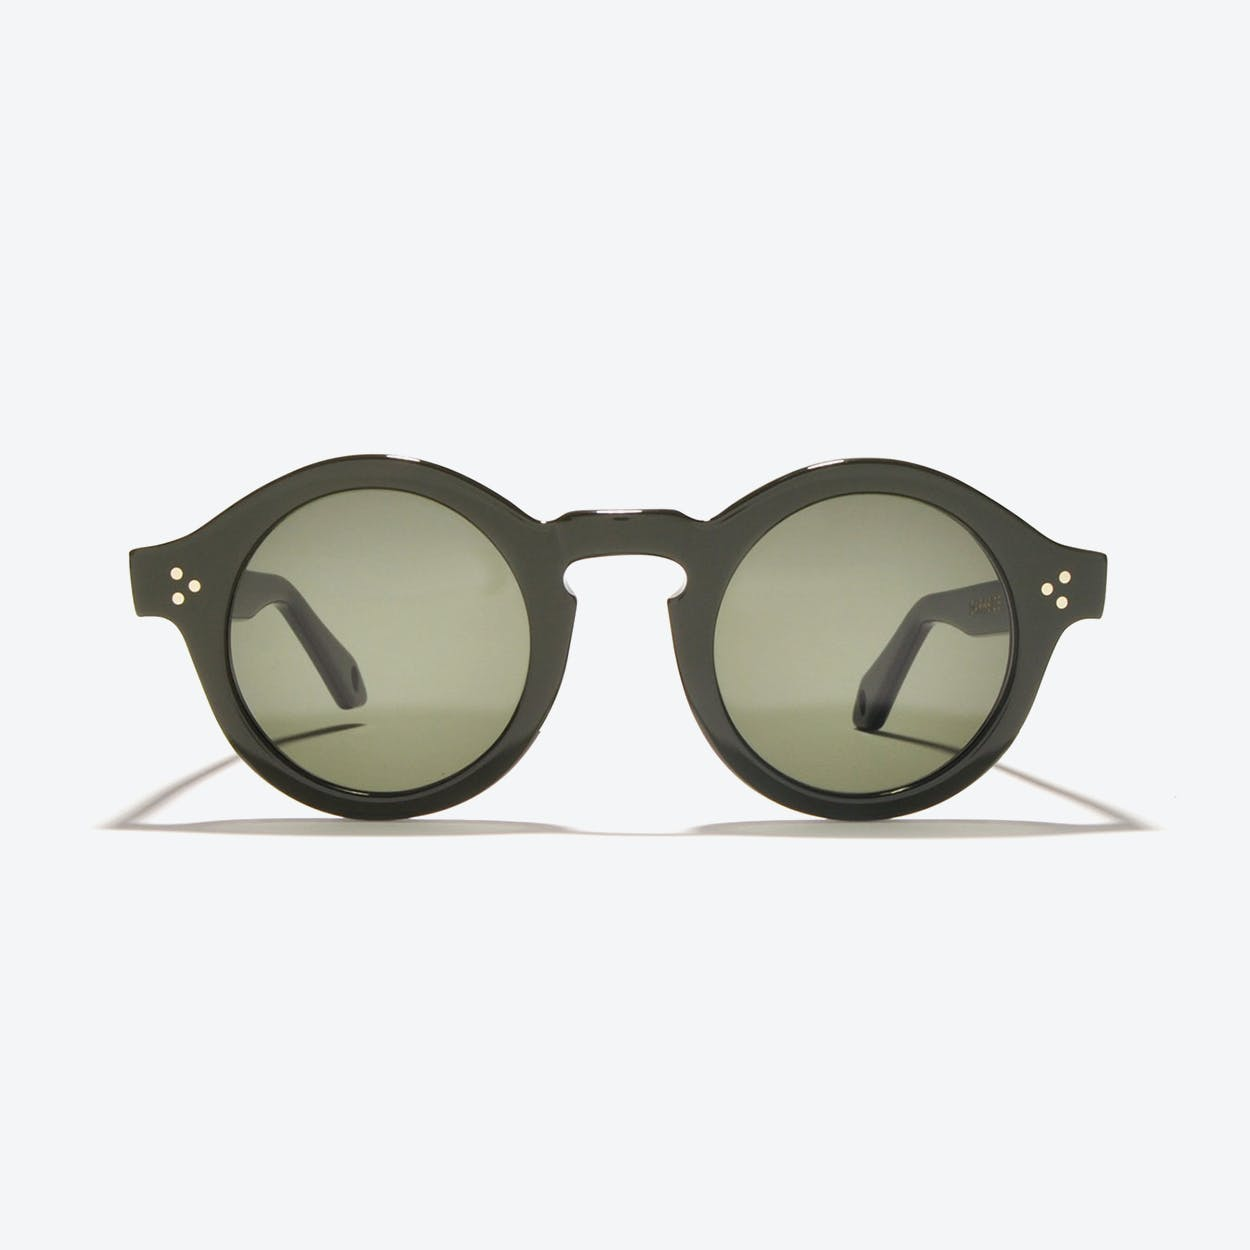 Orion Sunglassses in Olive